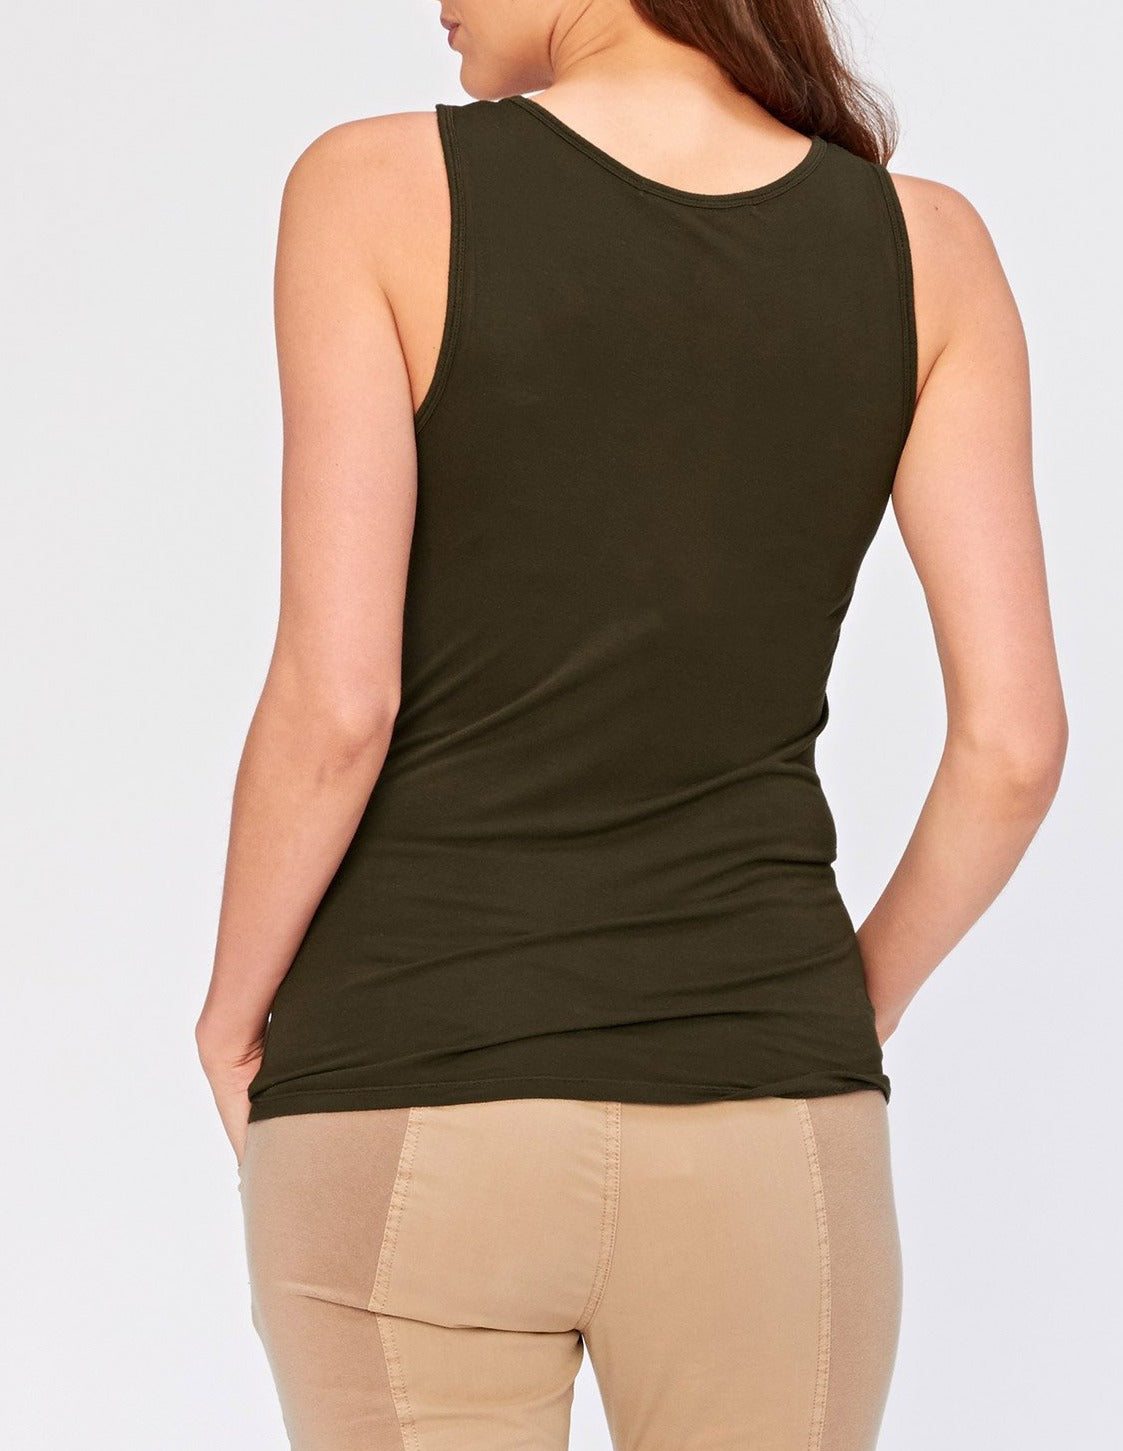 Made of luxuriously soft jersey this tank make a great layering piece that works with both our Wearables & XCVI Collections. Mix and match for a perfect look.  Jersey body - 100% Rayon. Preshrunk. Machine washable. Imported.